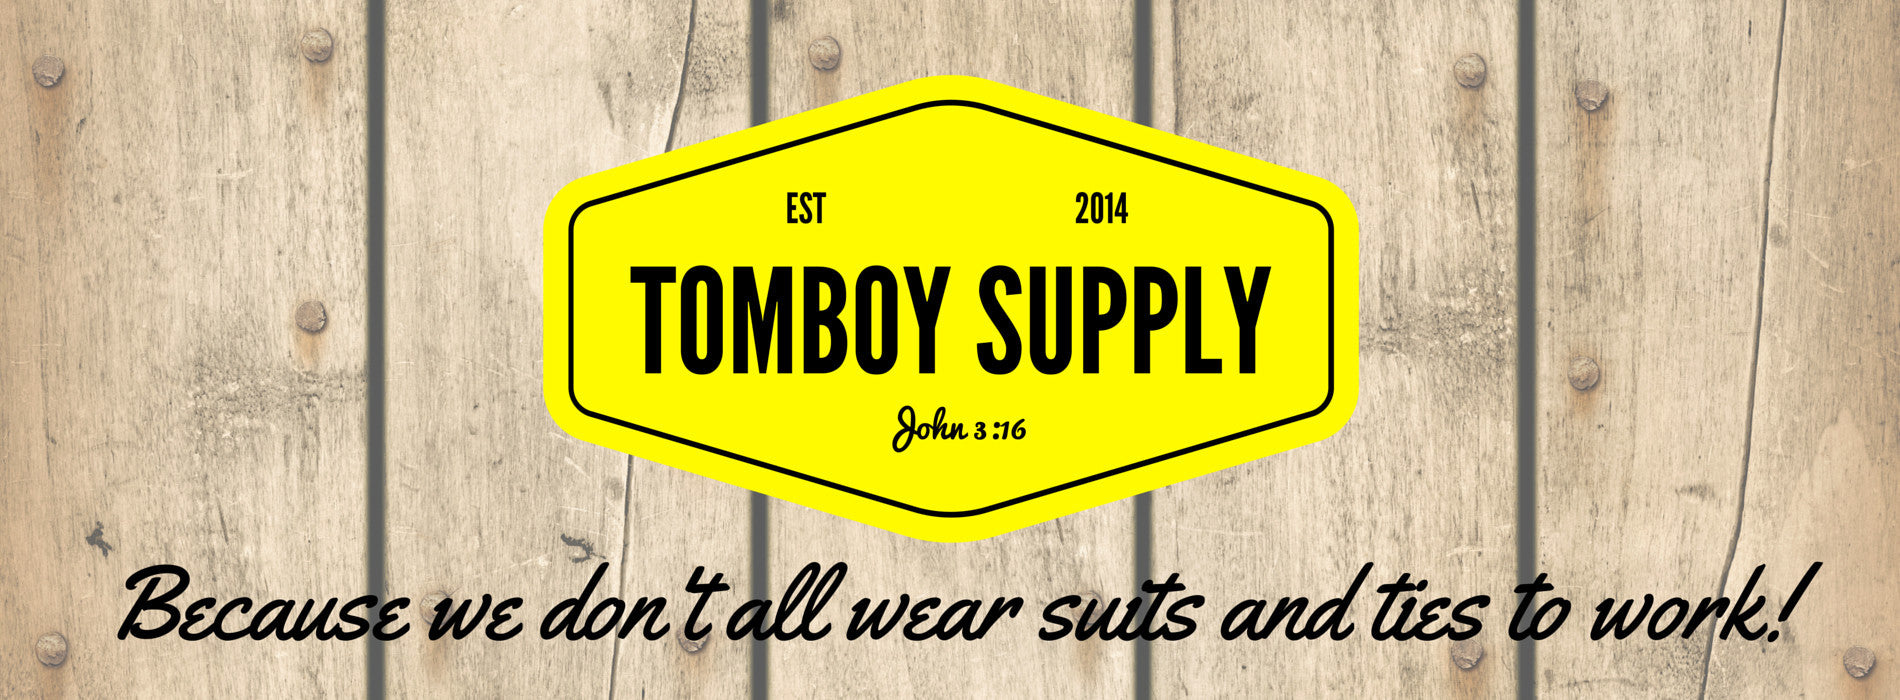 Tomboy Supply, because we don't all wear suits and ties to work